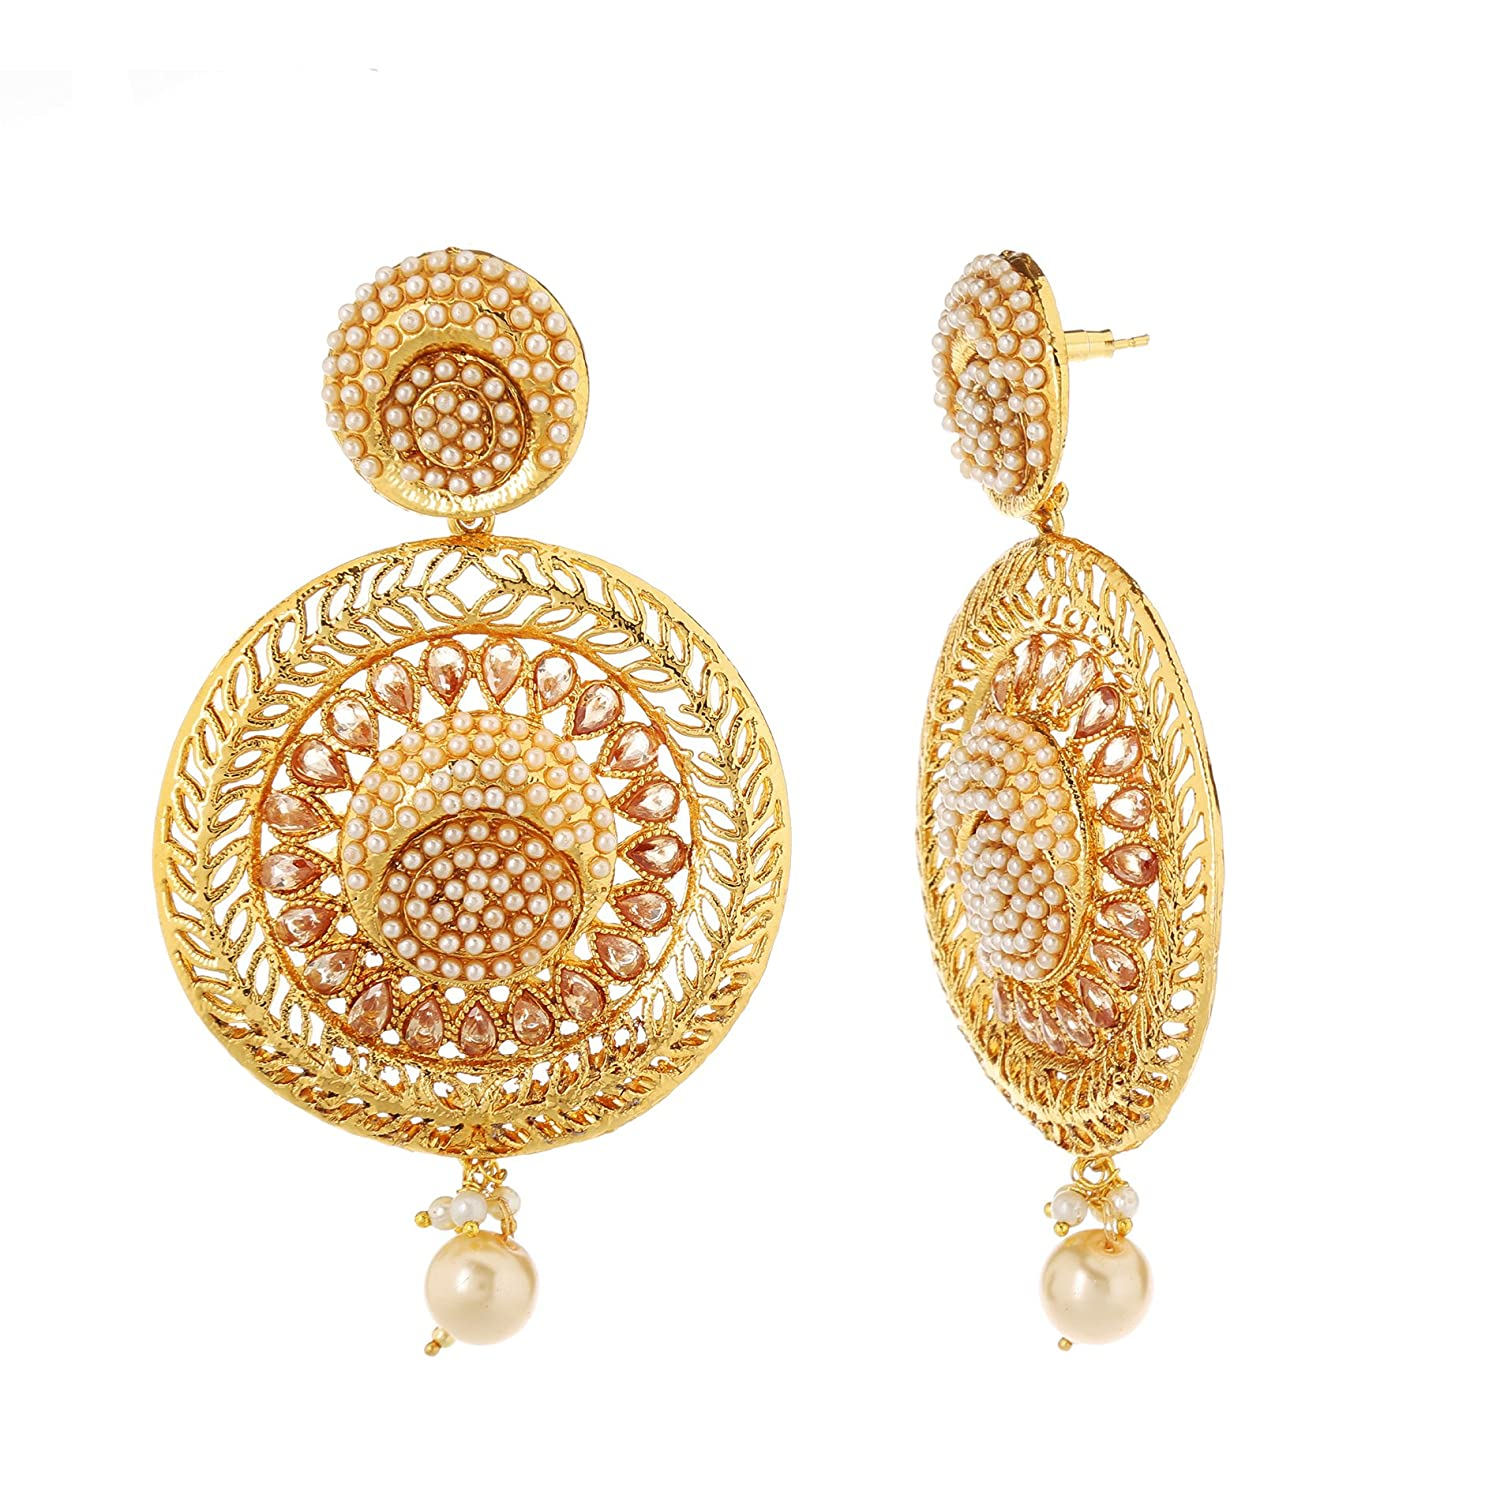 716c5e594d970 Homies International Gold Kundan Pearl Dangle & Drop Earrings For ...